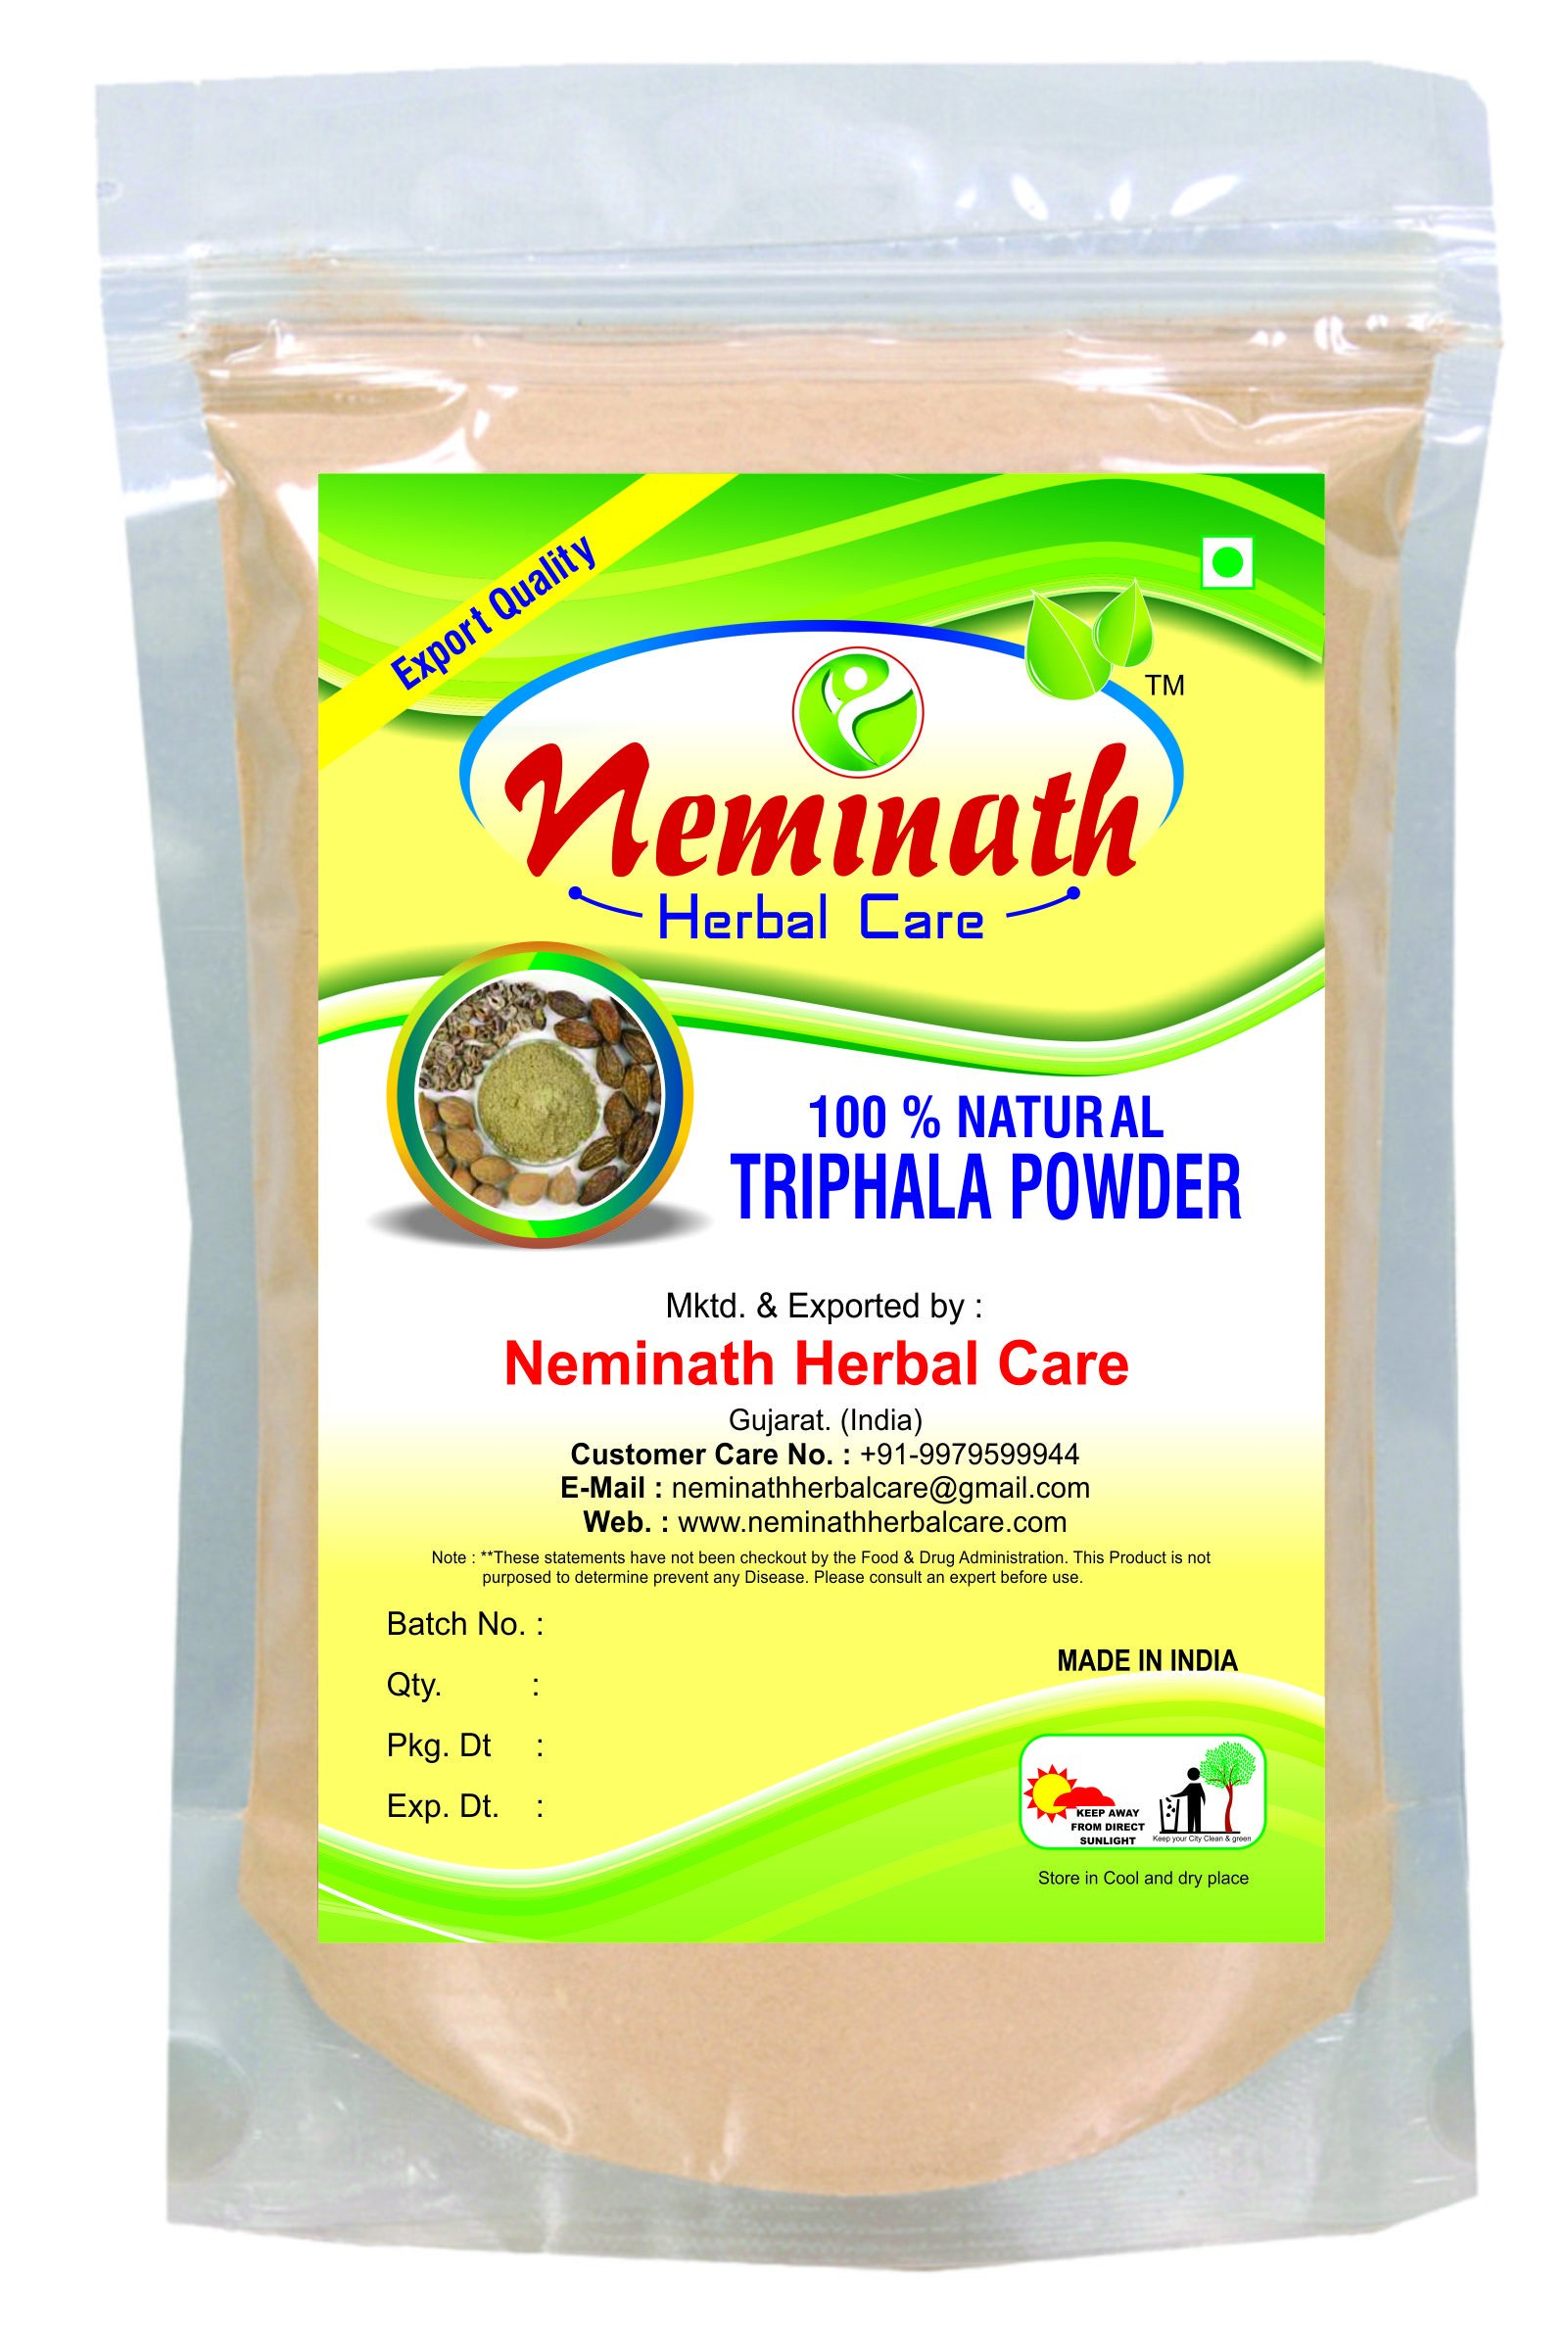 100% Natural Triphala Powder to PREVENT HAIR FALL NATURALLY by Neminath Herbal care (1/2 lb / 8 ounces / 227 g) for HEALTHY HAIRS